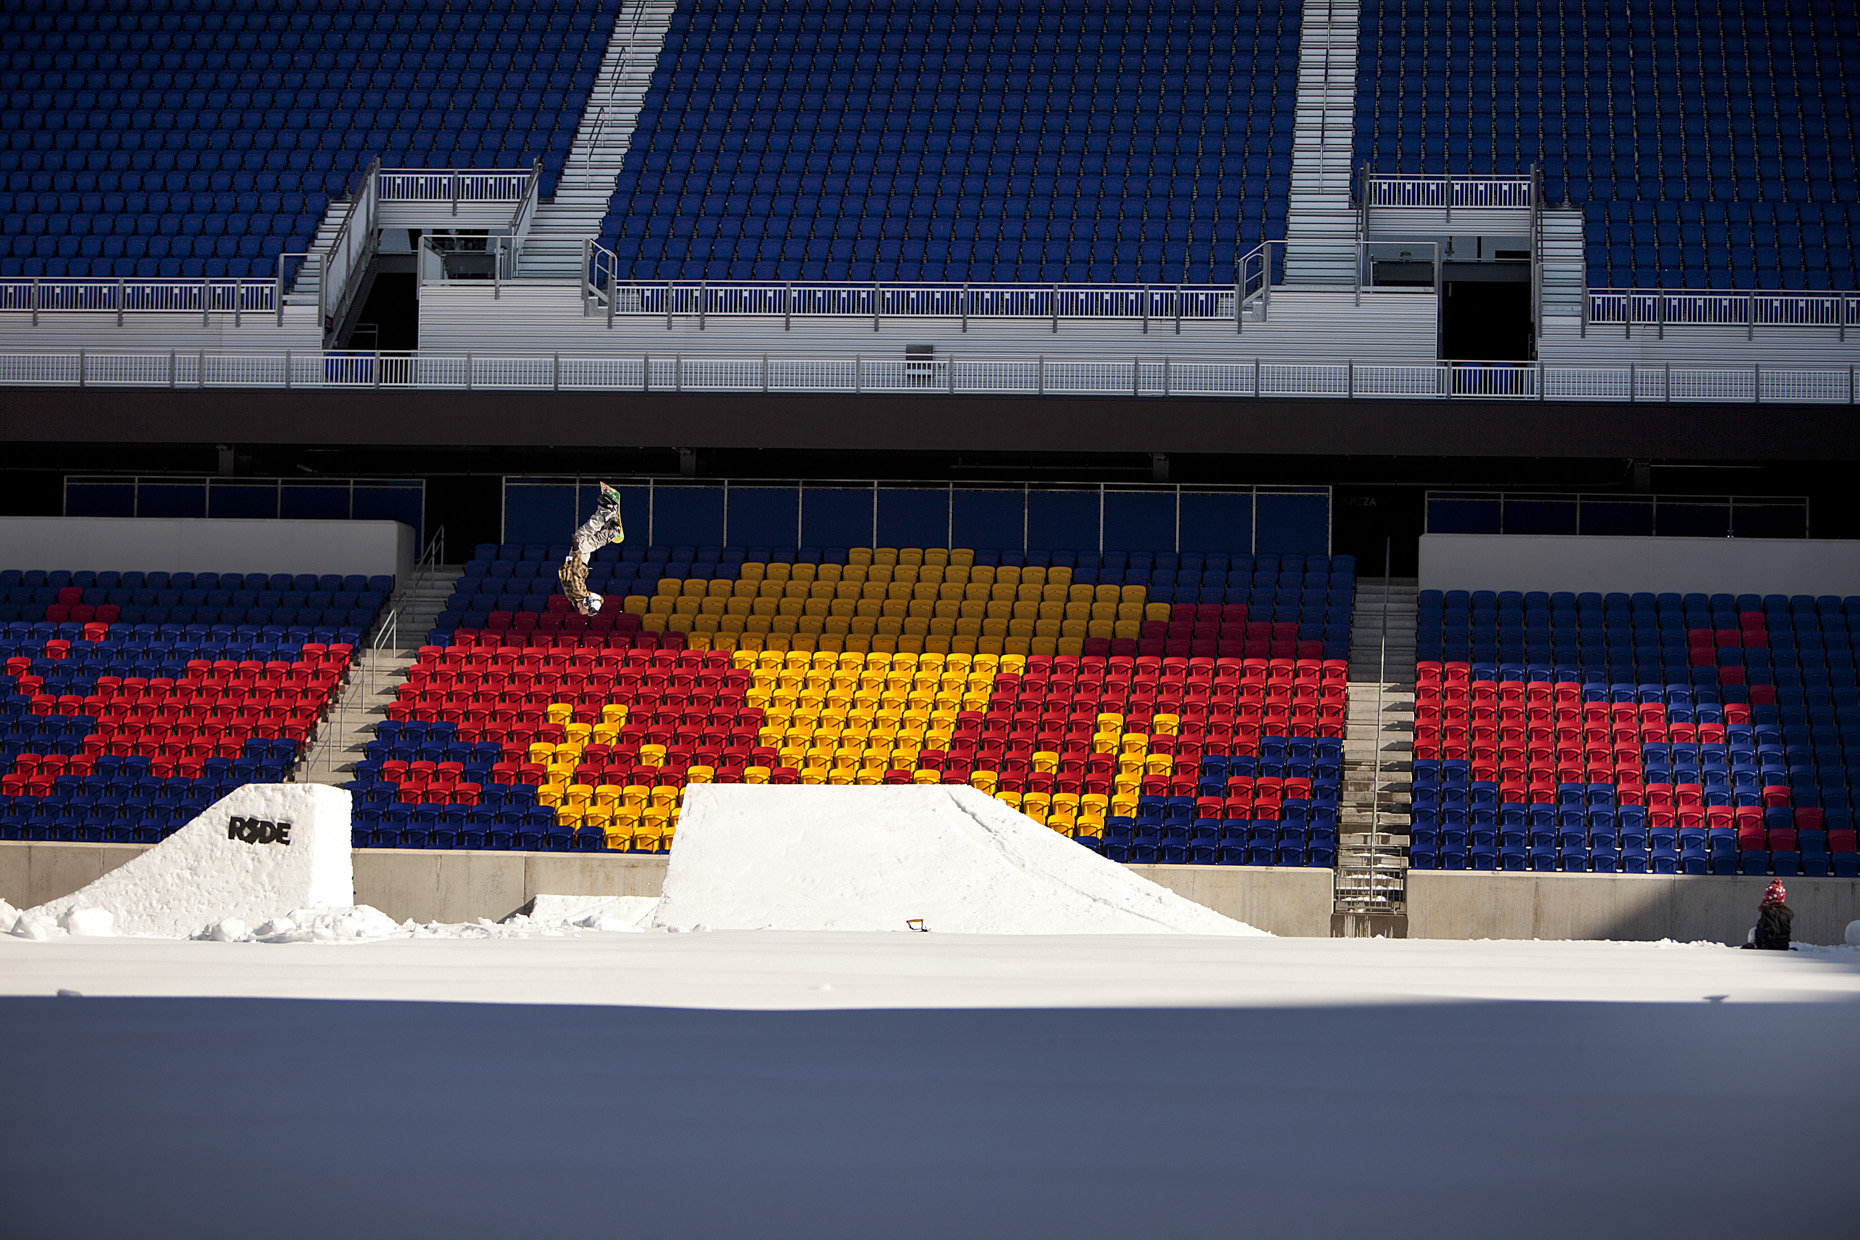 Nils Mindnech Snowboards Red Bulls soccer Stadium by Boston based commercial sports photographer Brian Nevins